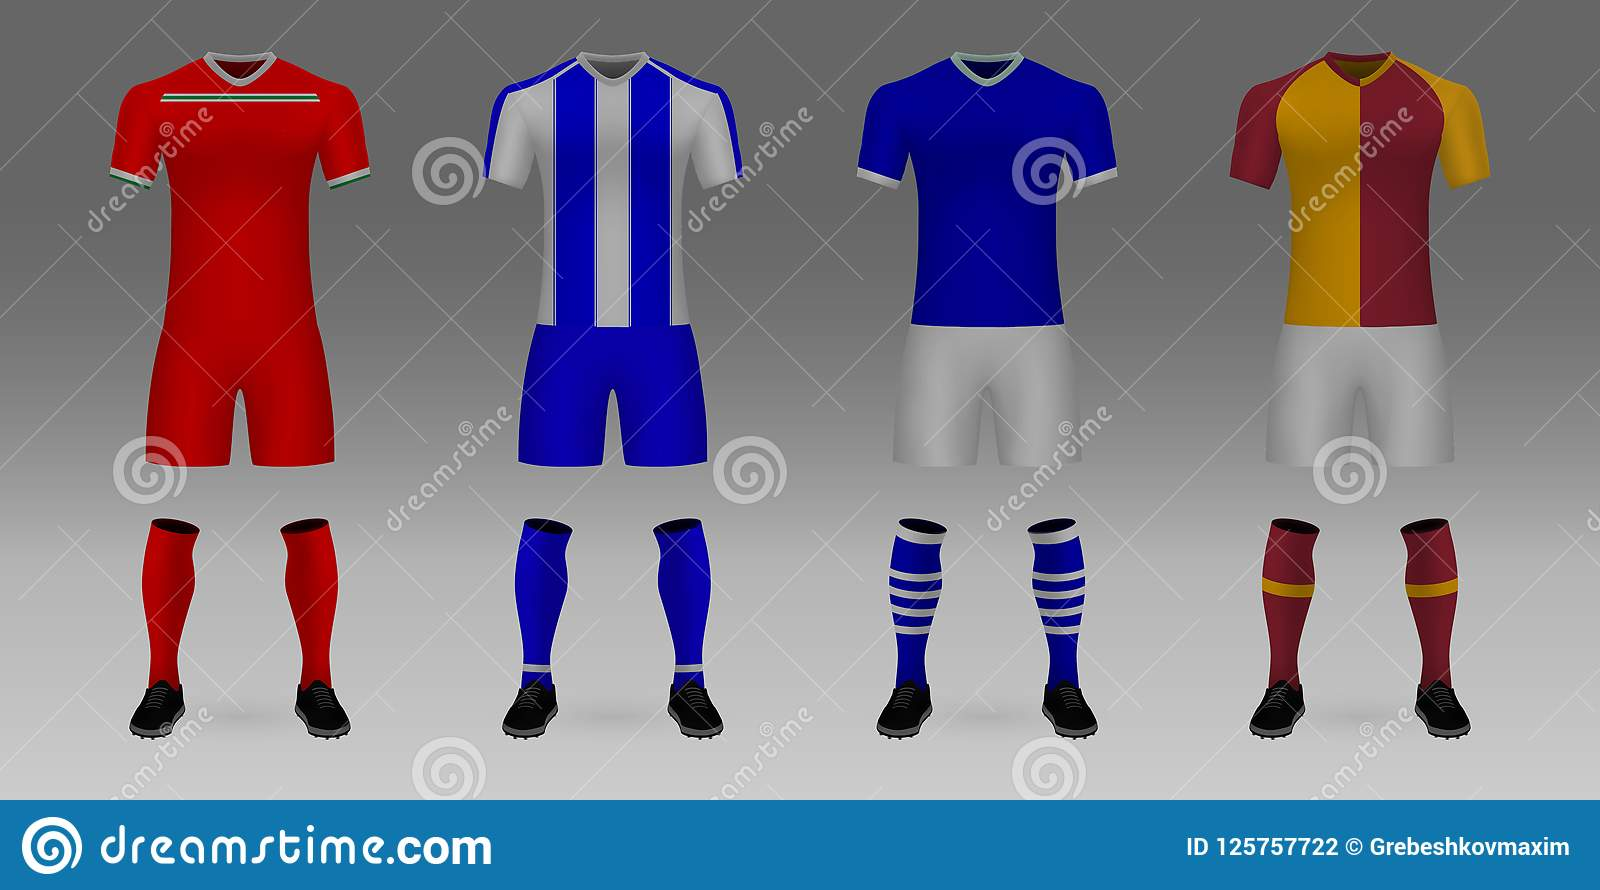 4b675ebb6 Mockup Of Football Team Uniform Stock Vector - Illustration of polo ...